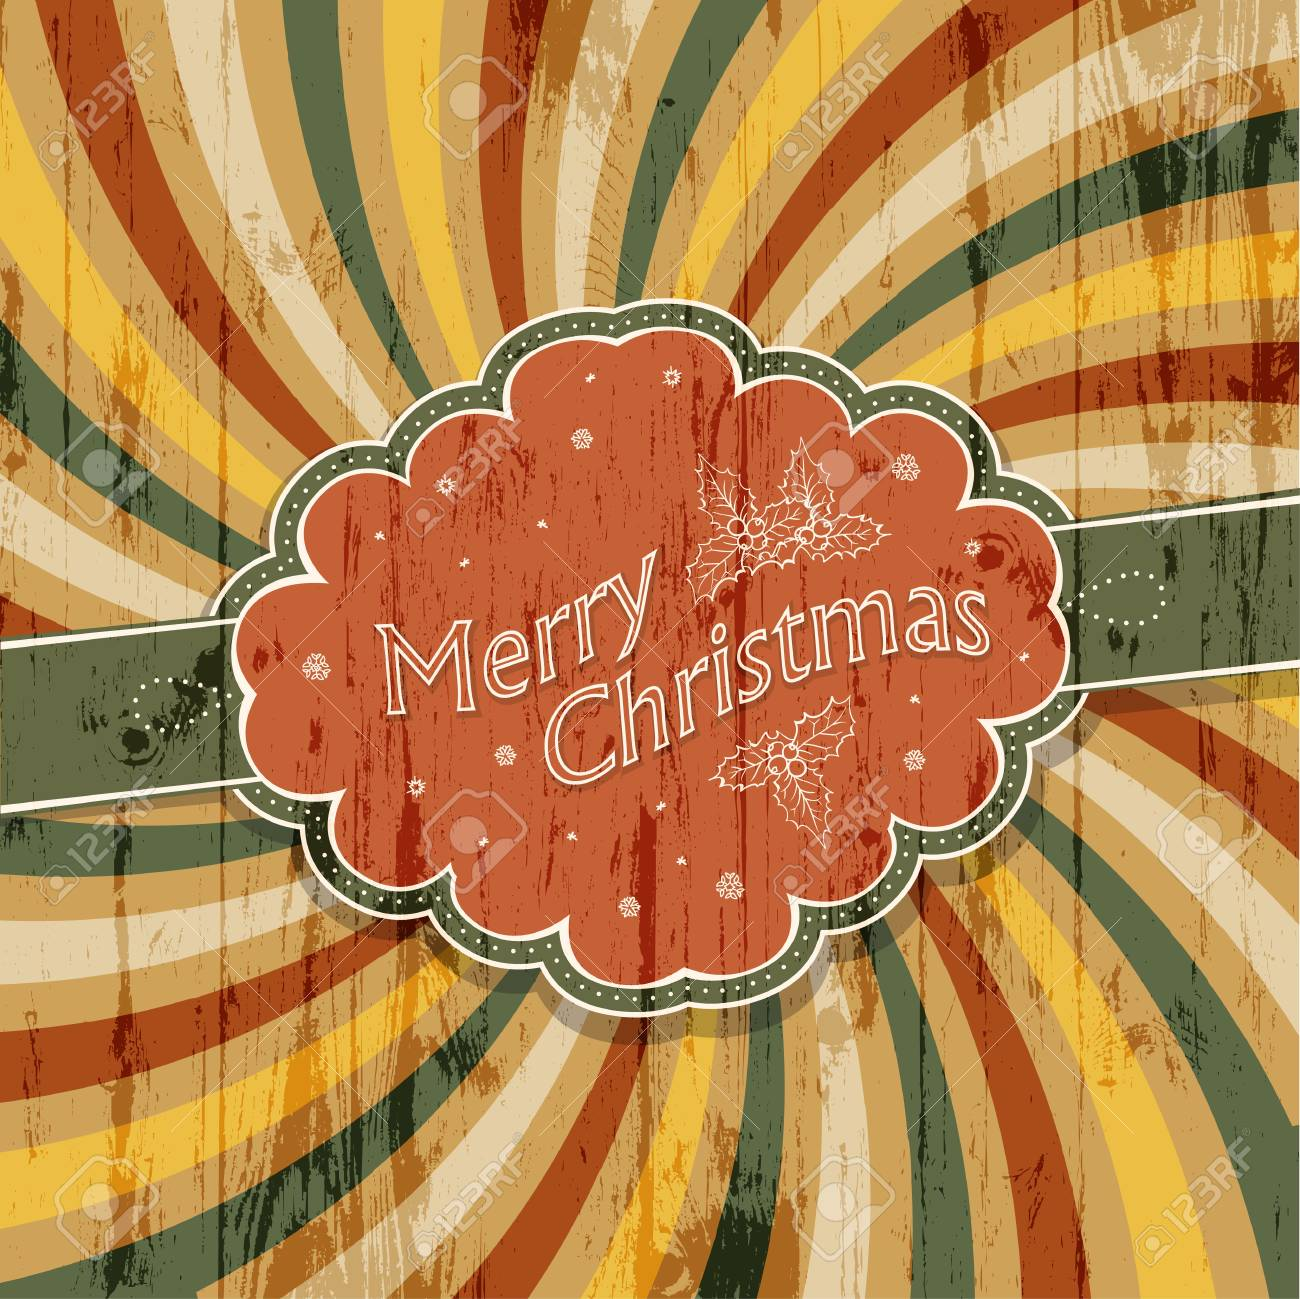 Merry Christmas background with colorful rays background Stock Photo - 16610367